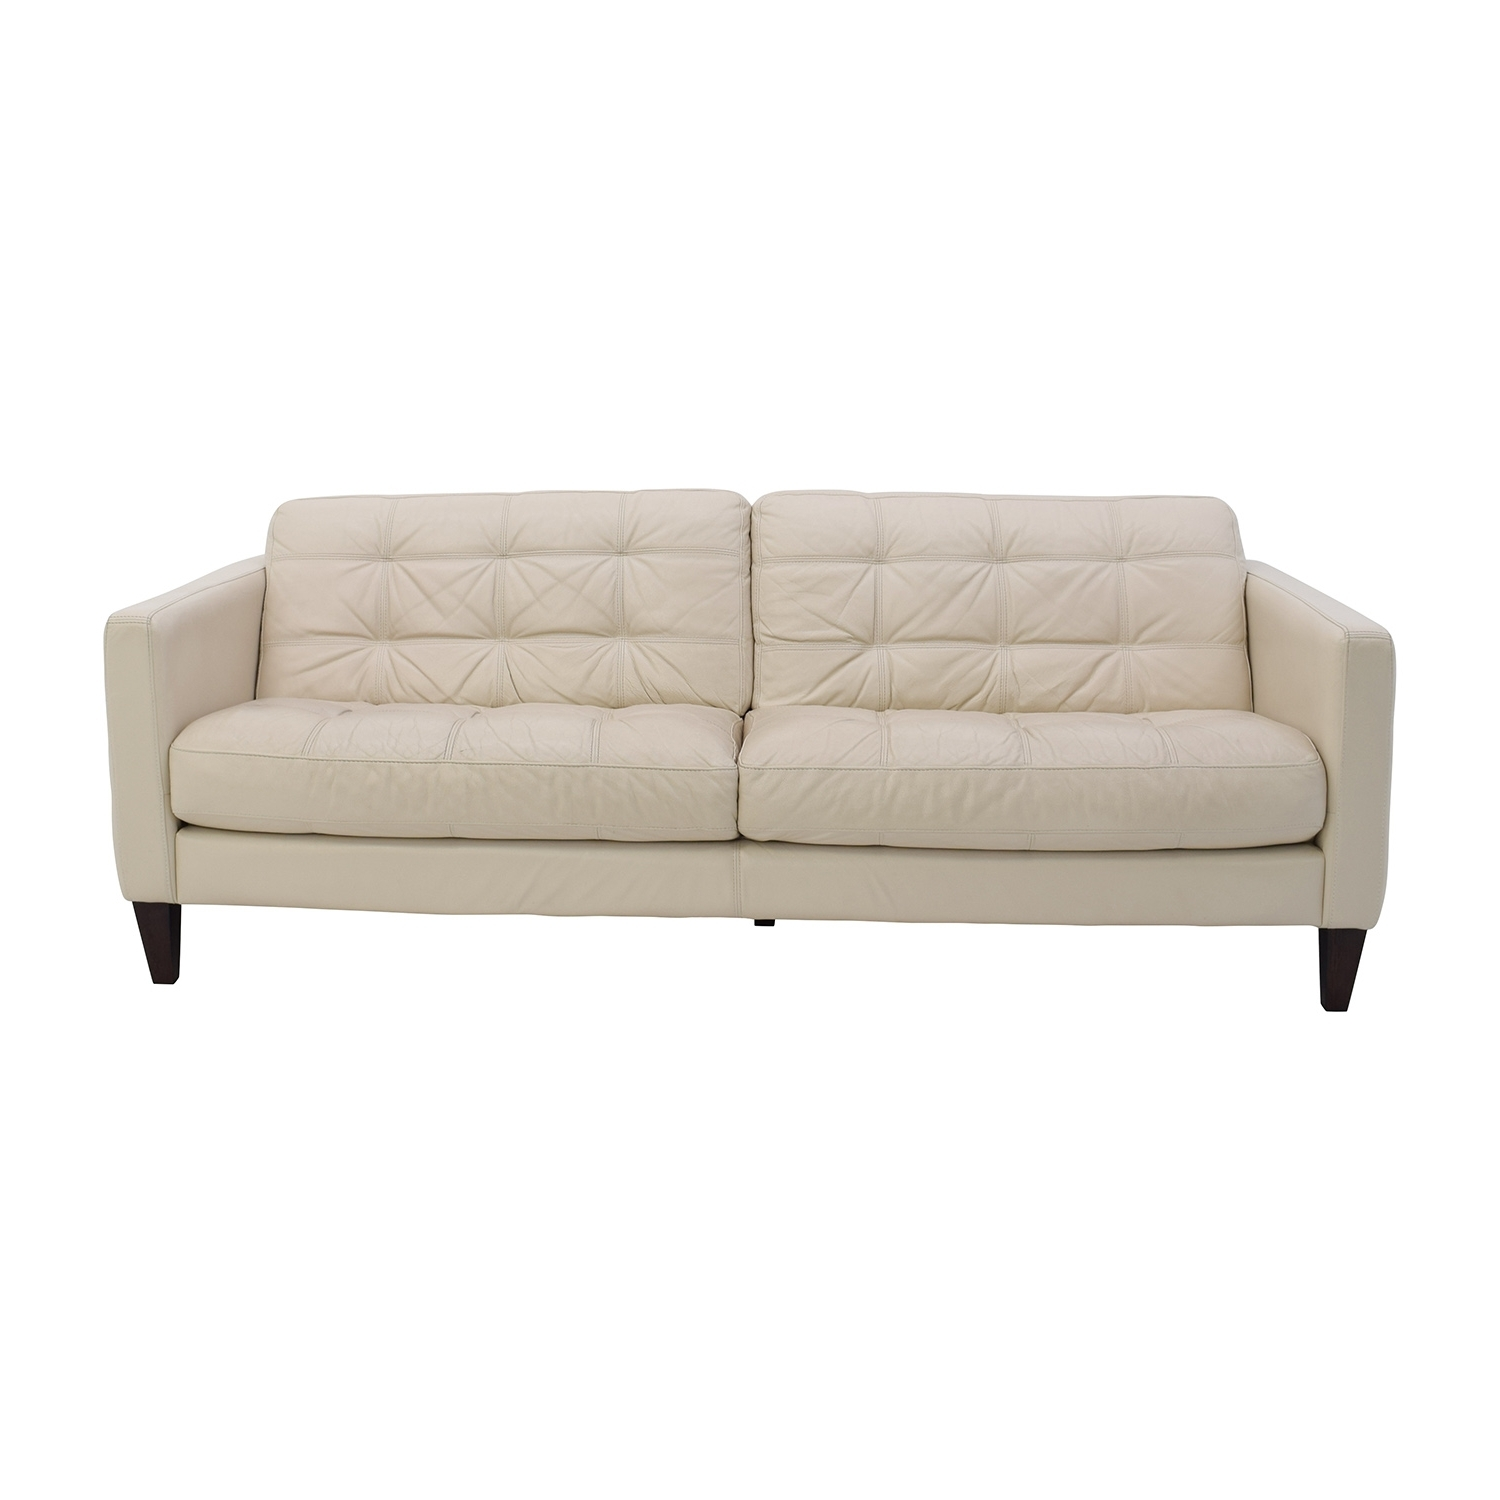 [%85% Off – Macy's Macy's Milan Pearl Leather Sofa / Sofas Intended For Newest Macys Leather Sofas|Macys Leather Sofas In 2018 85% Off – Macy's Macy's Milan Pearl Leather Sofa / Sofas|Most Recent Macys Leather Sofas Within 85% Off – Macy's Macy's Milan Pearl Leather Sofa / Sofas|Current 85% Off – Macy's Macy's Milan Pearl Leather Sofa / Sofas Throughout Macys Leather Sofas%] (View 3 of 20)